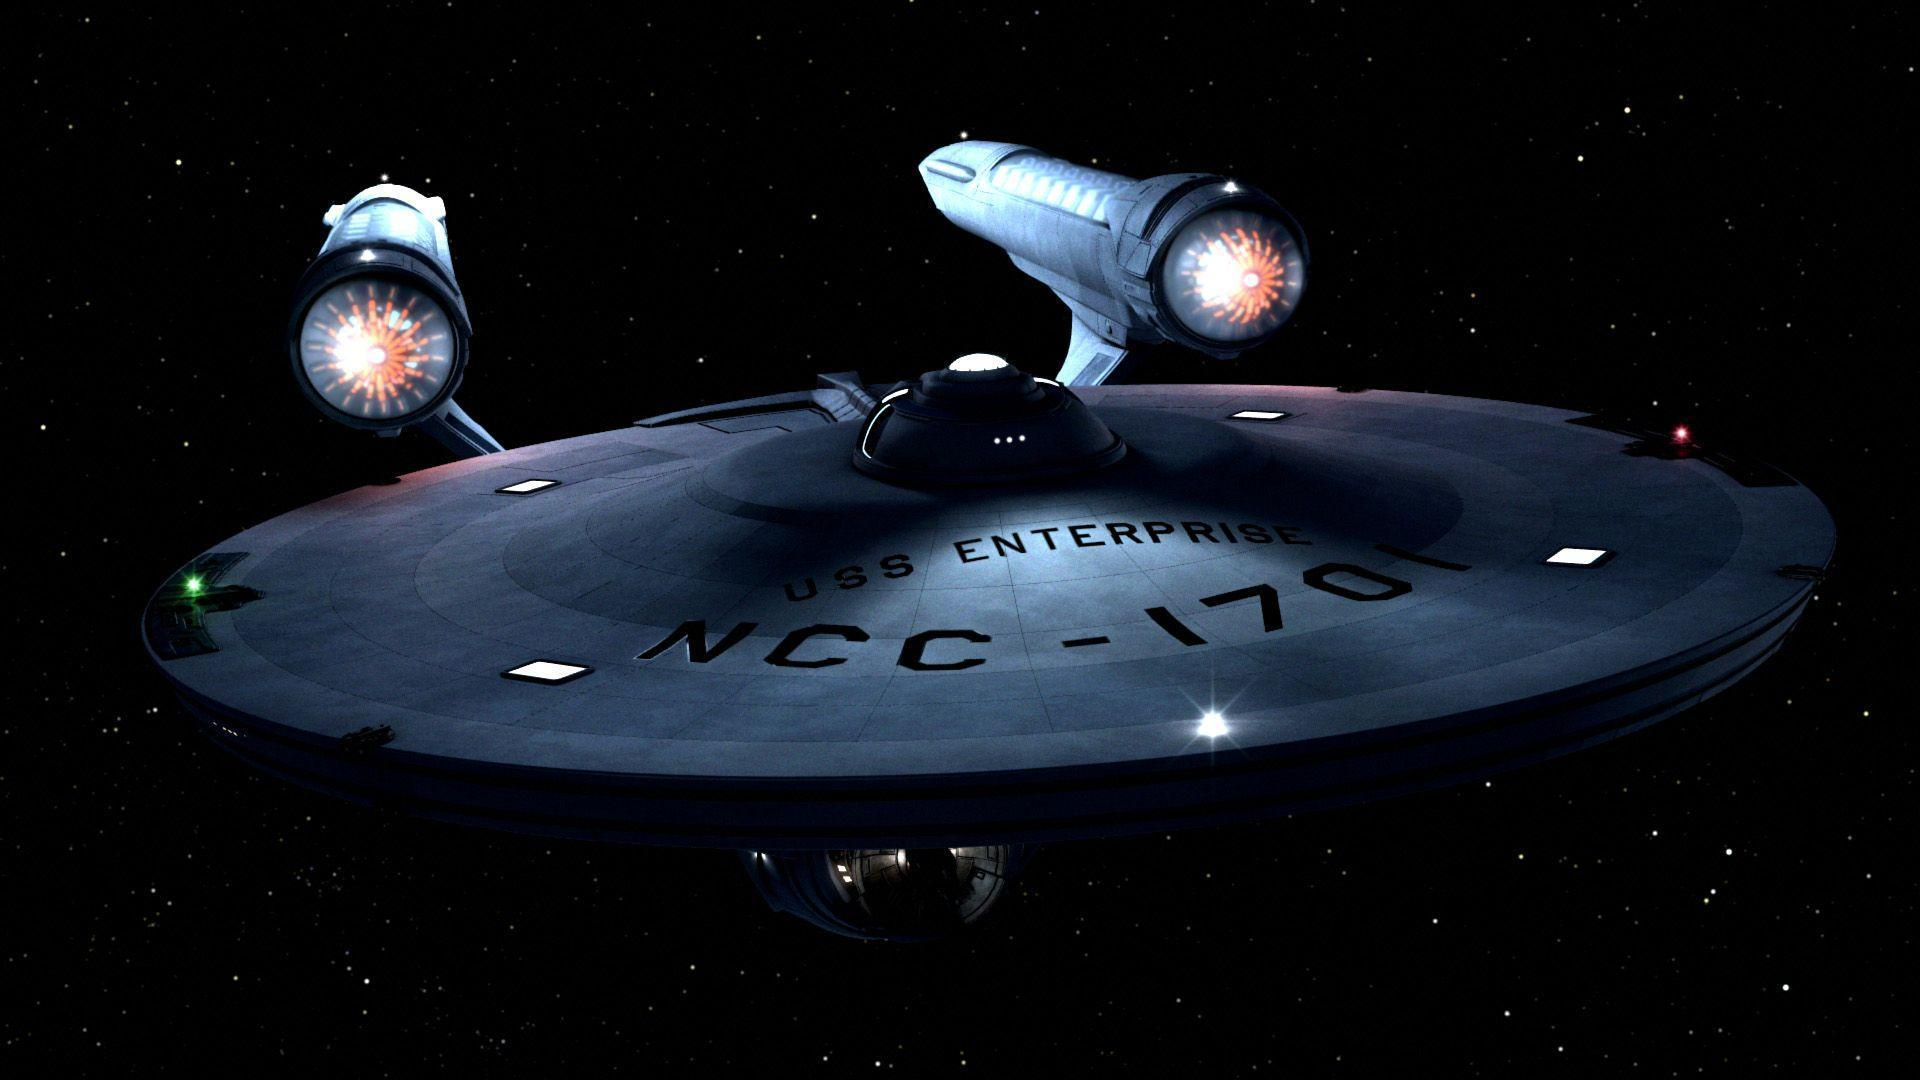 enterprise e wallpaper hd - photo #45